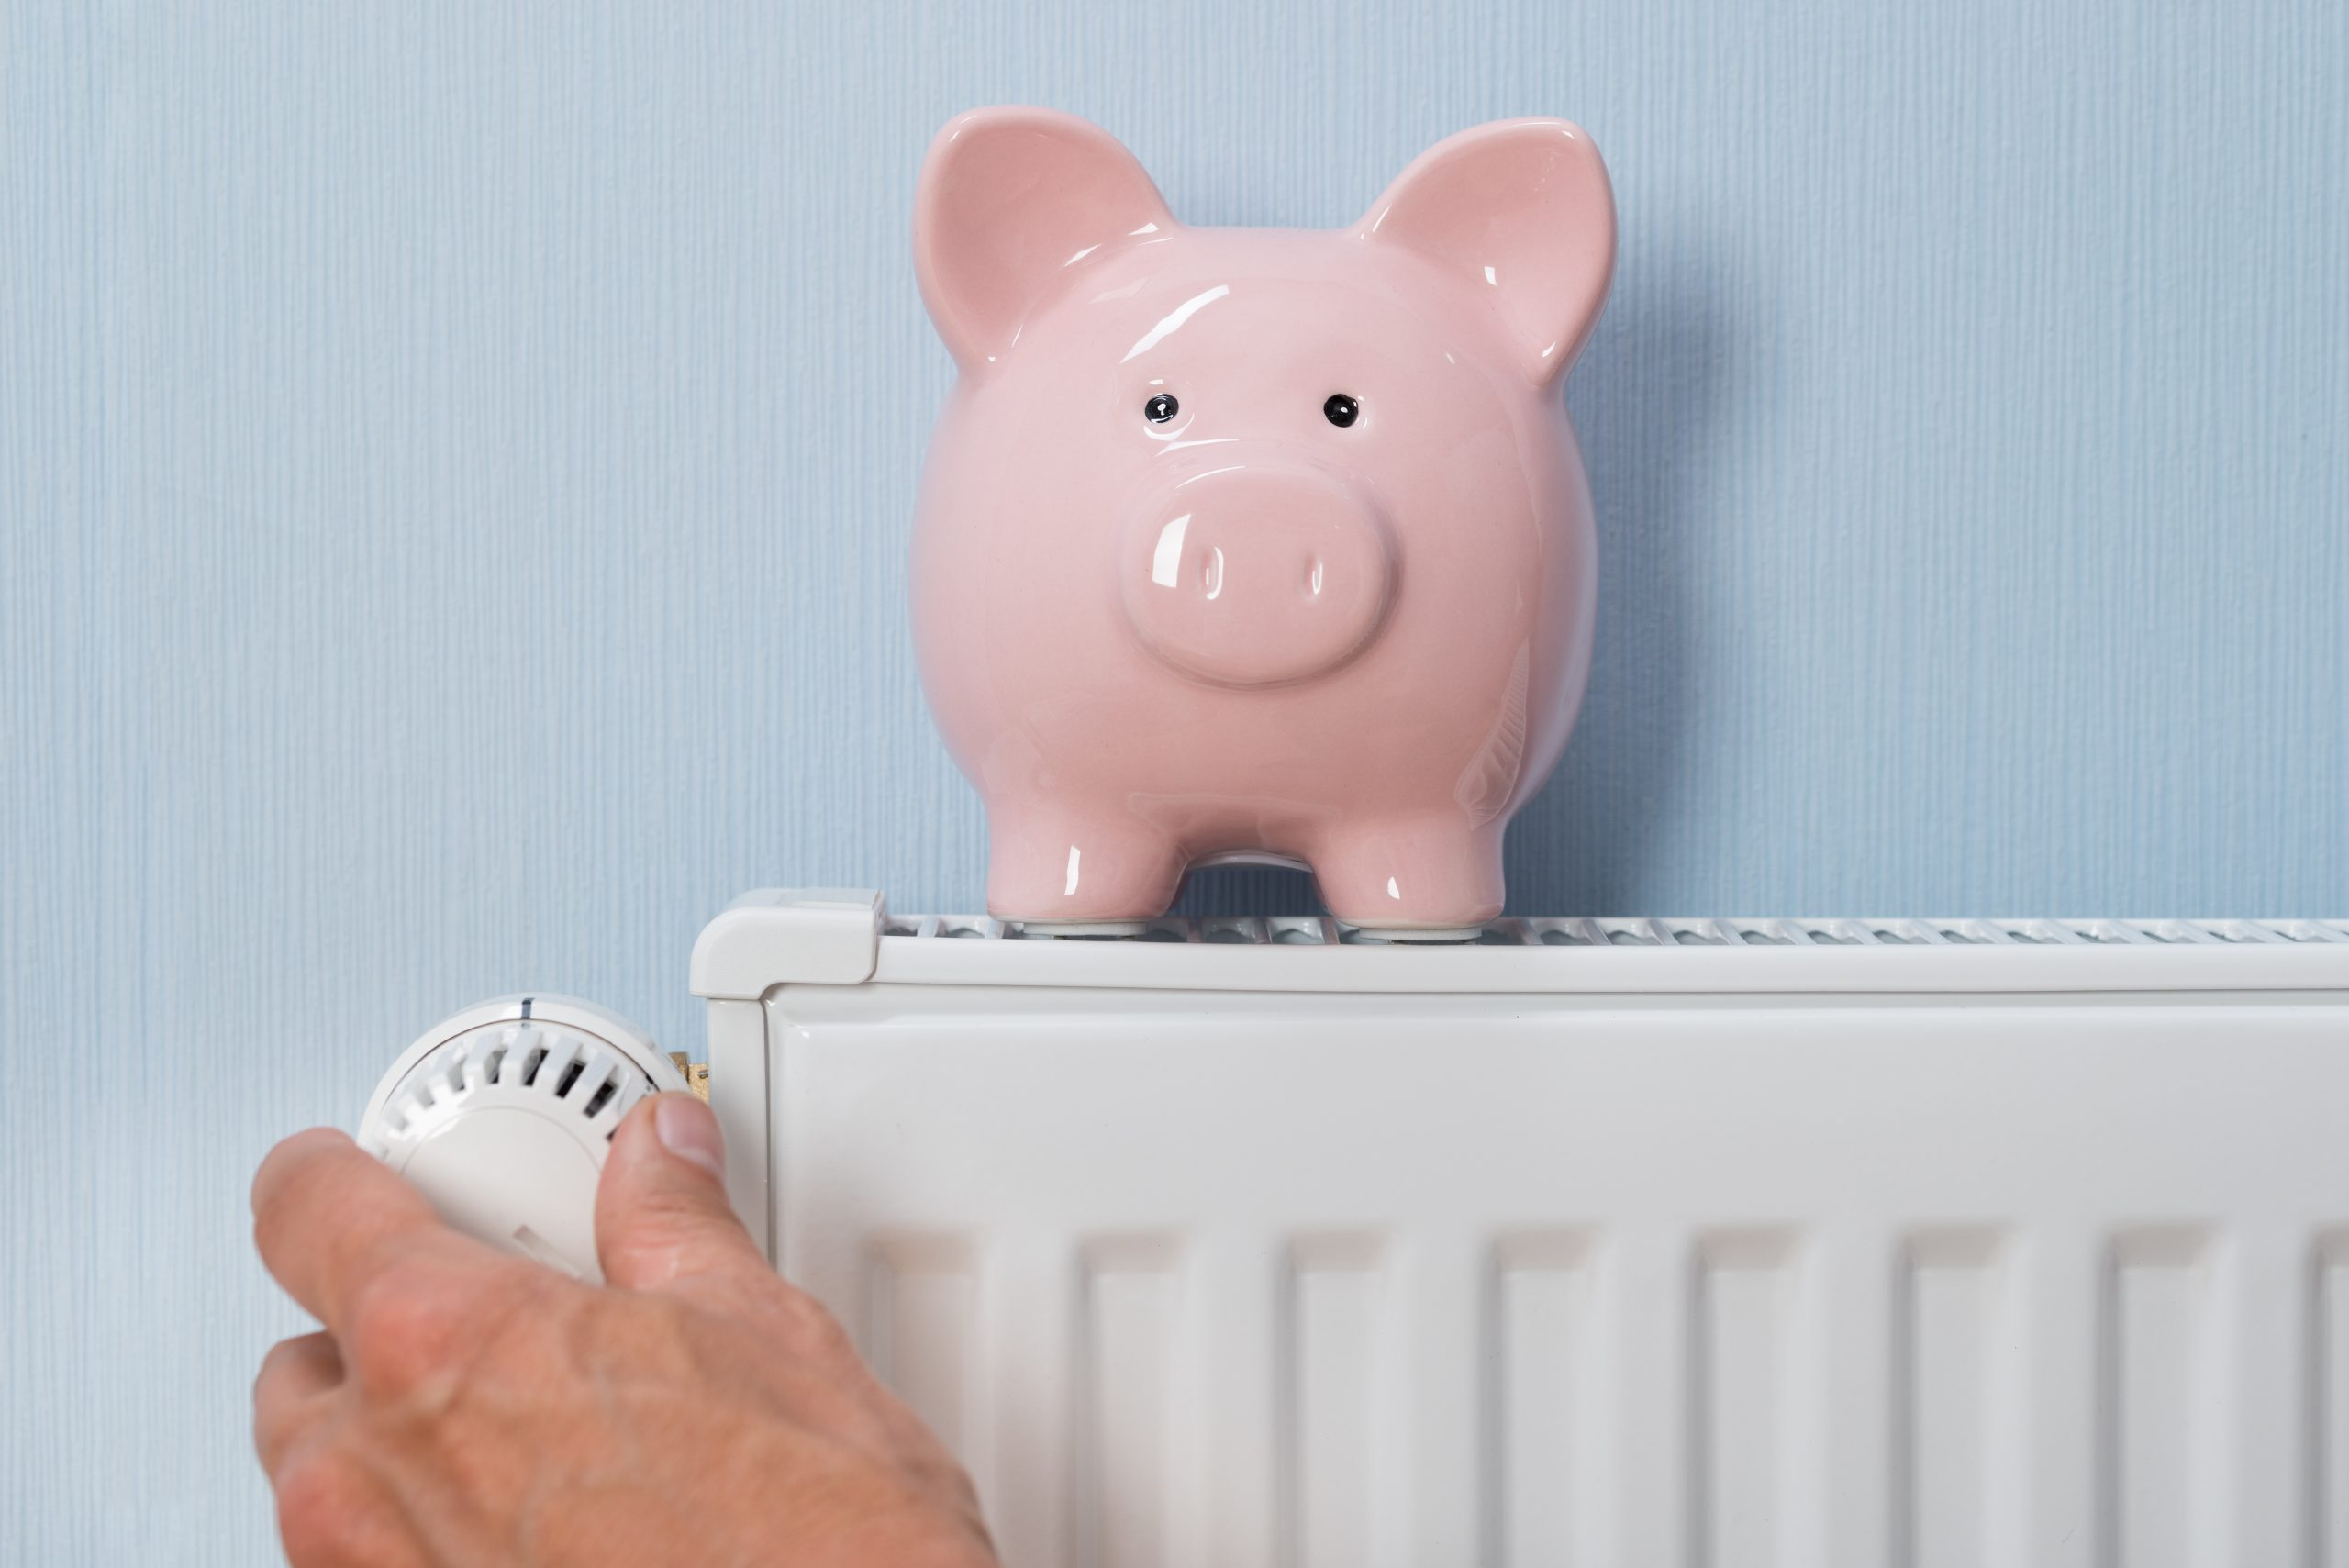 The future of heating our homes